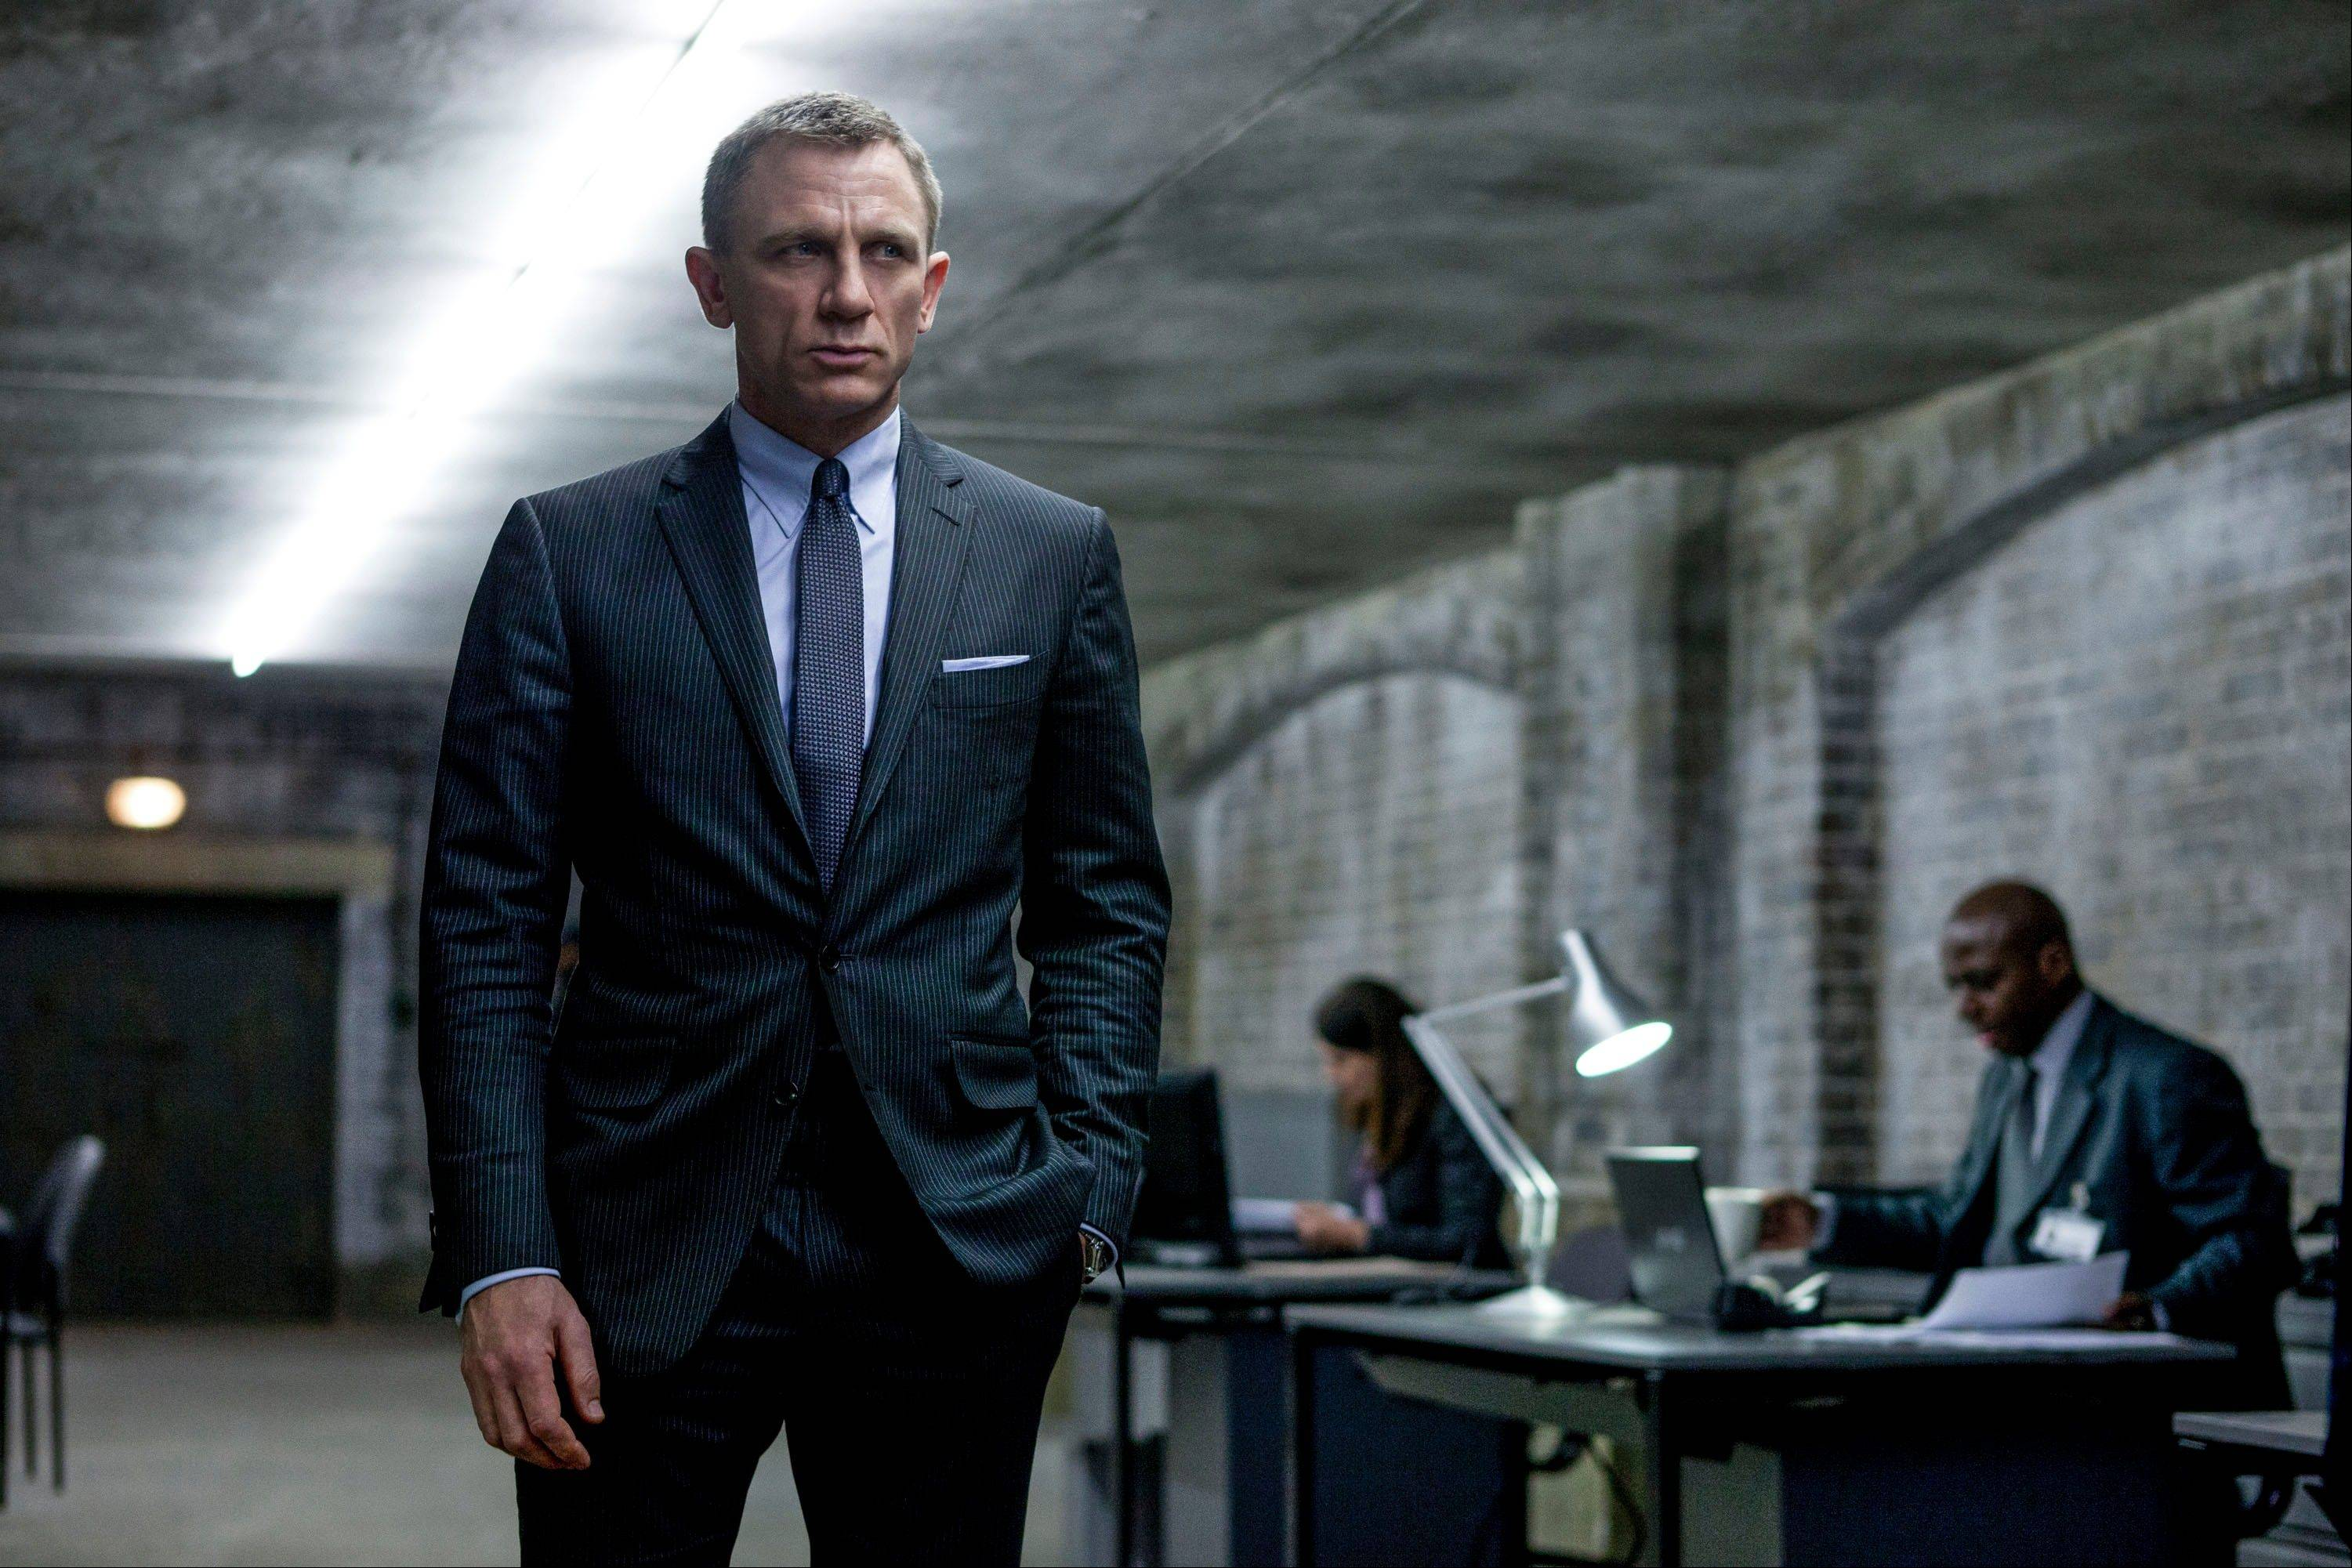 Telecast producers of the 85th Academy Awards say the show will feature a celebration of the 50th anniversary of James Bond. The most recent Bond film, �Skyfall,� has made more than $1 billion worldwide.